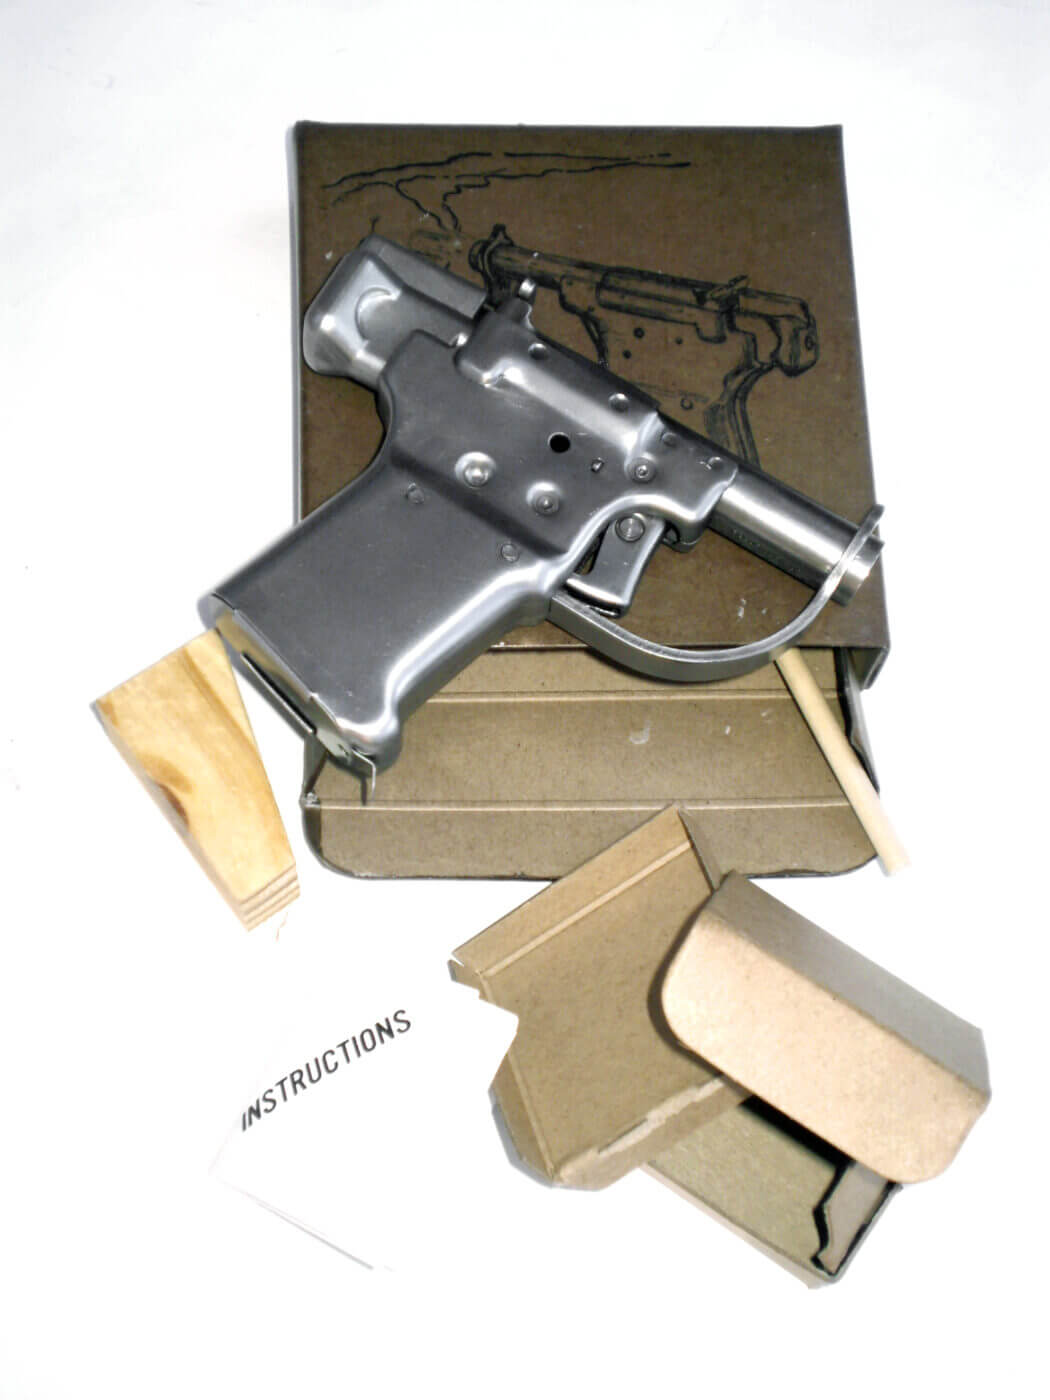 Reproduction Liberator pistol produced by Vintage Ordnance